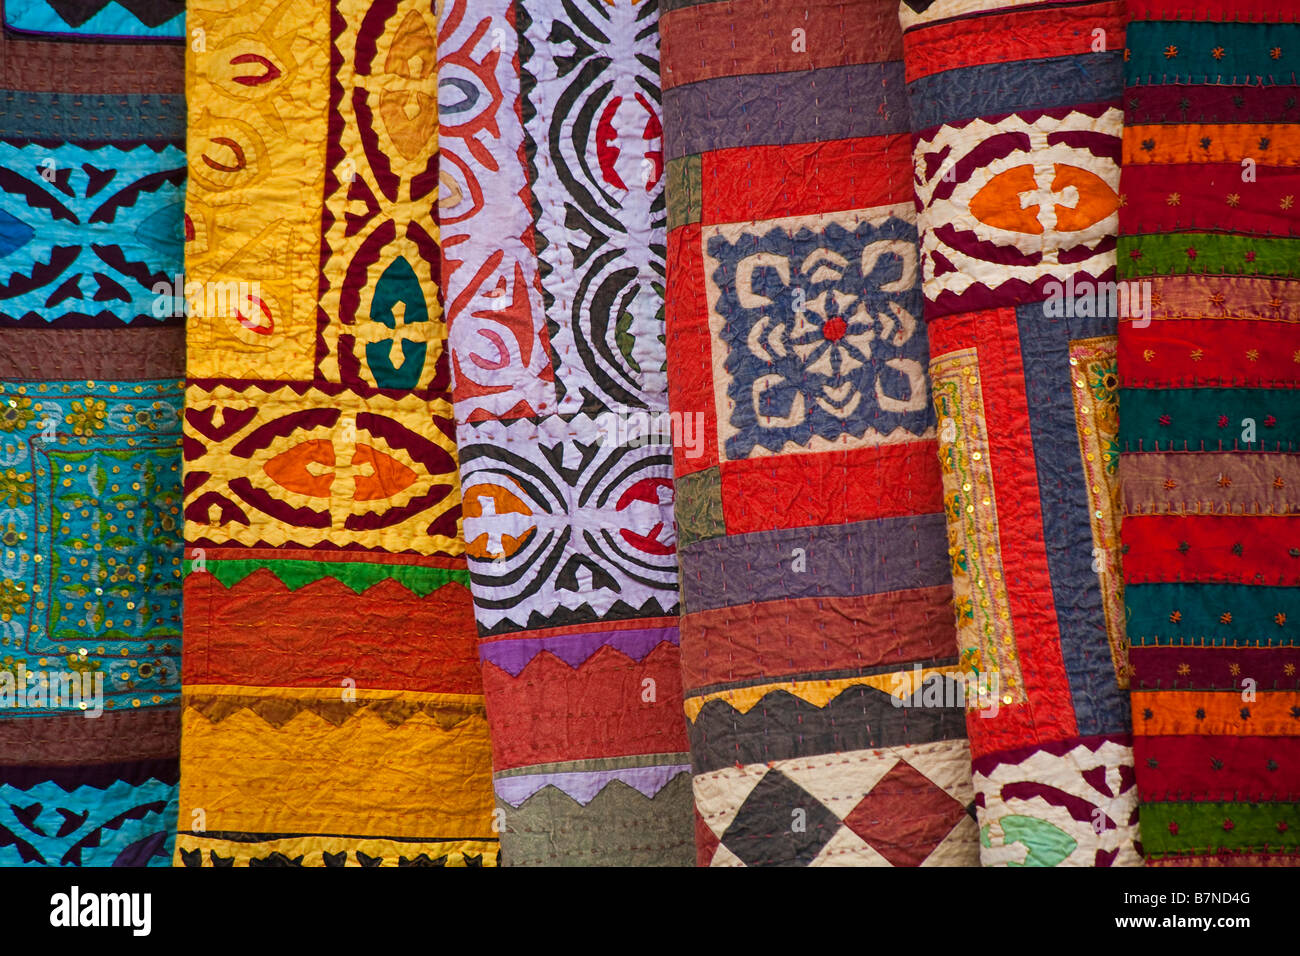 Attractive Colorful Rugs And Blankets Sold By The Street Vendors Of Santa Fe